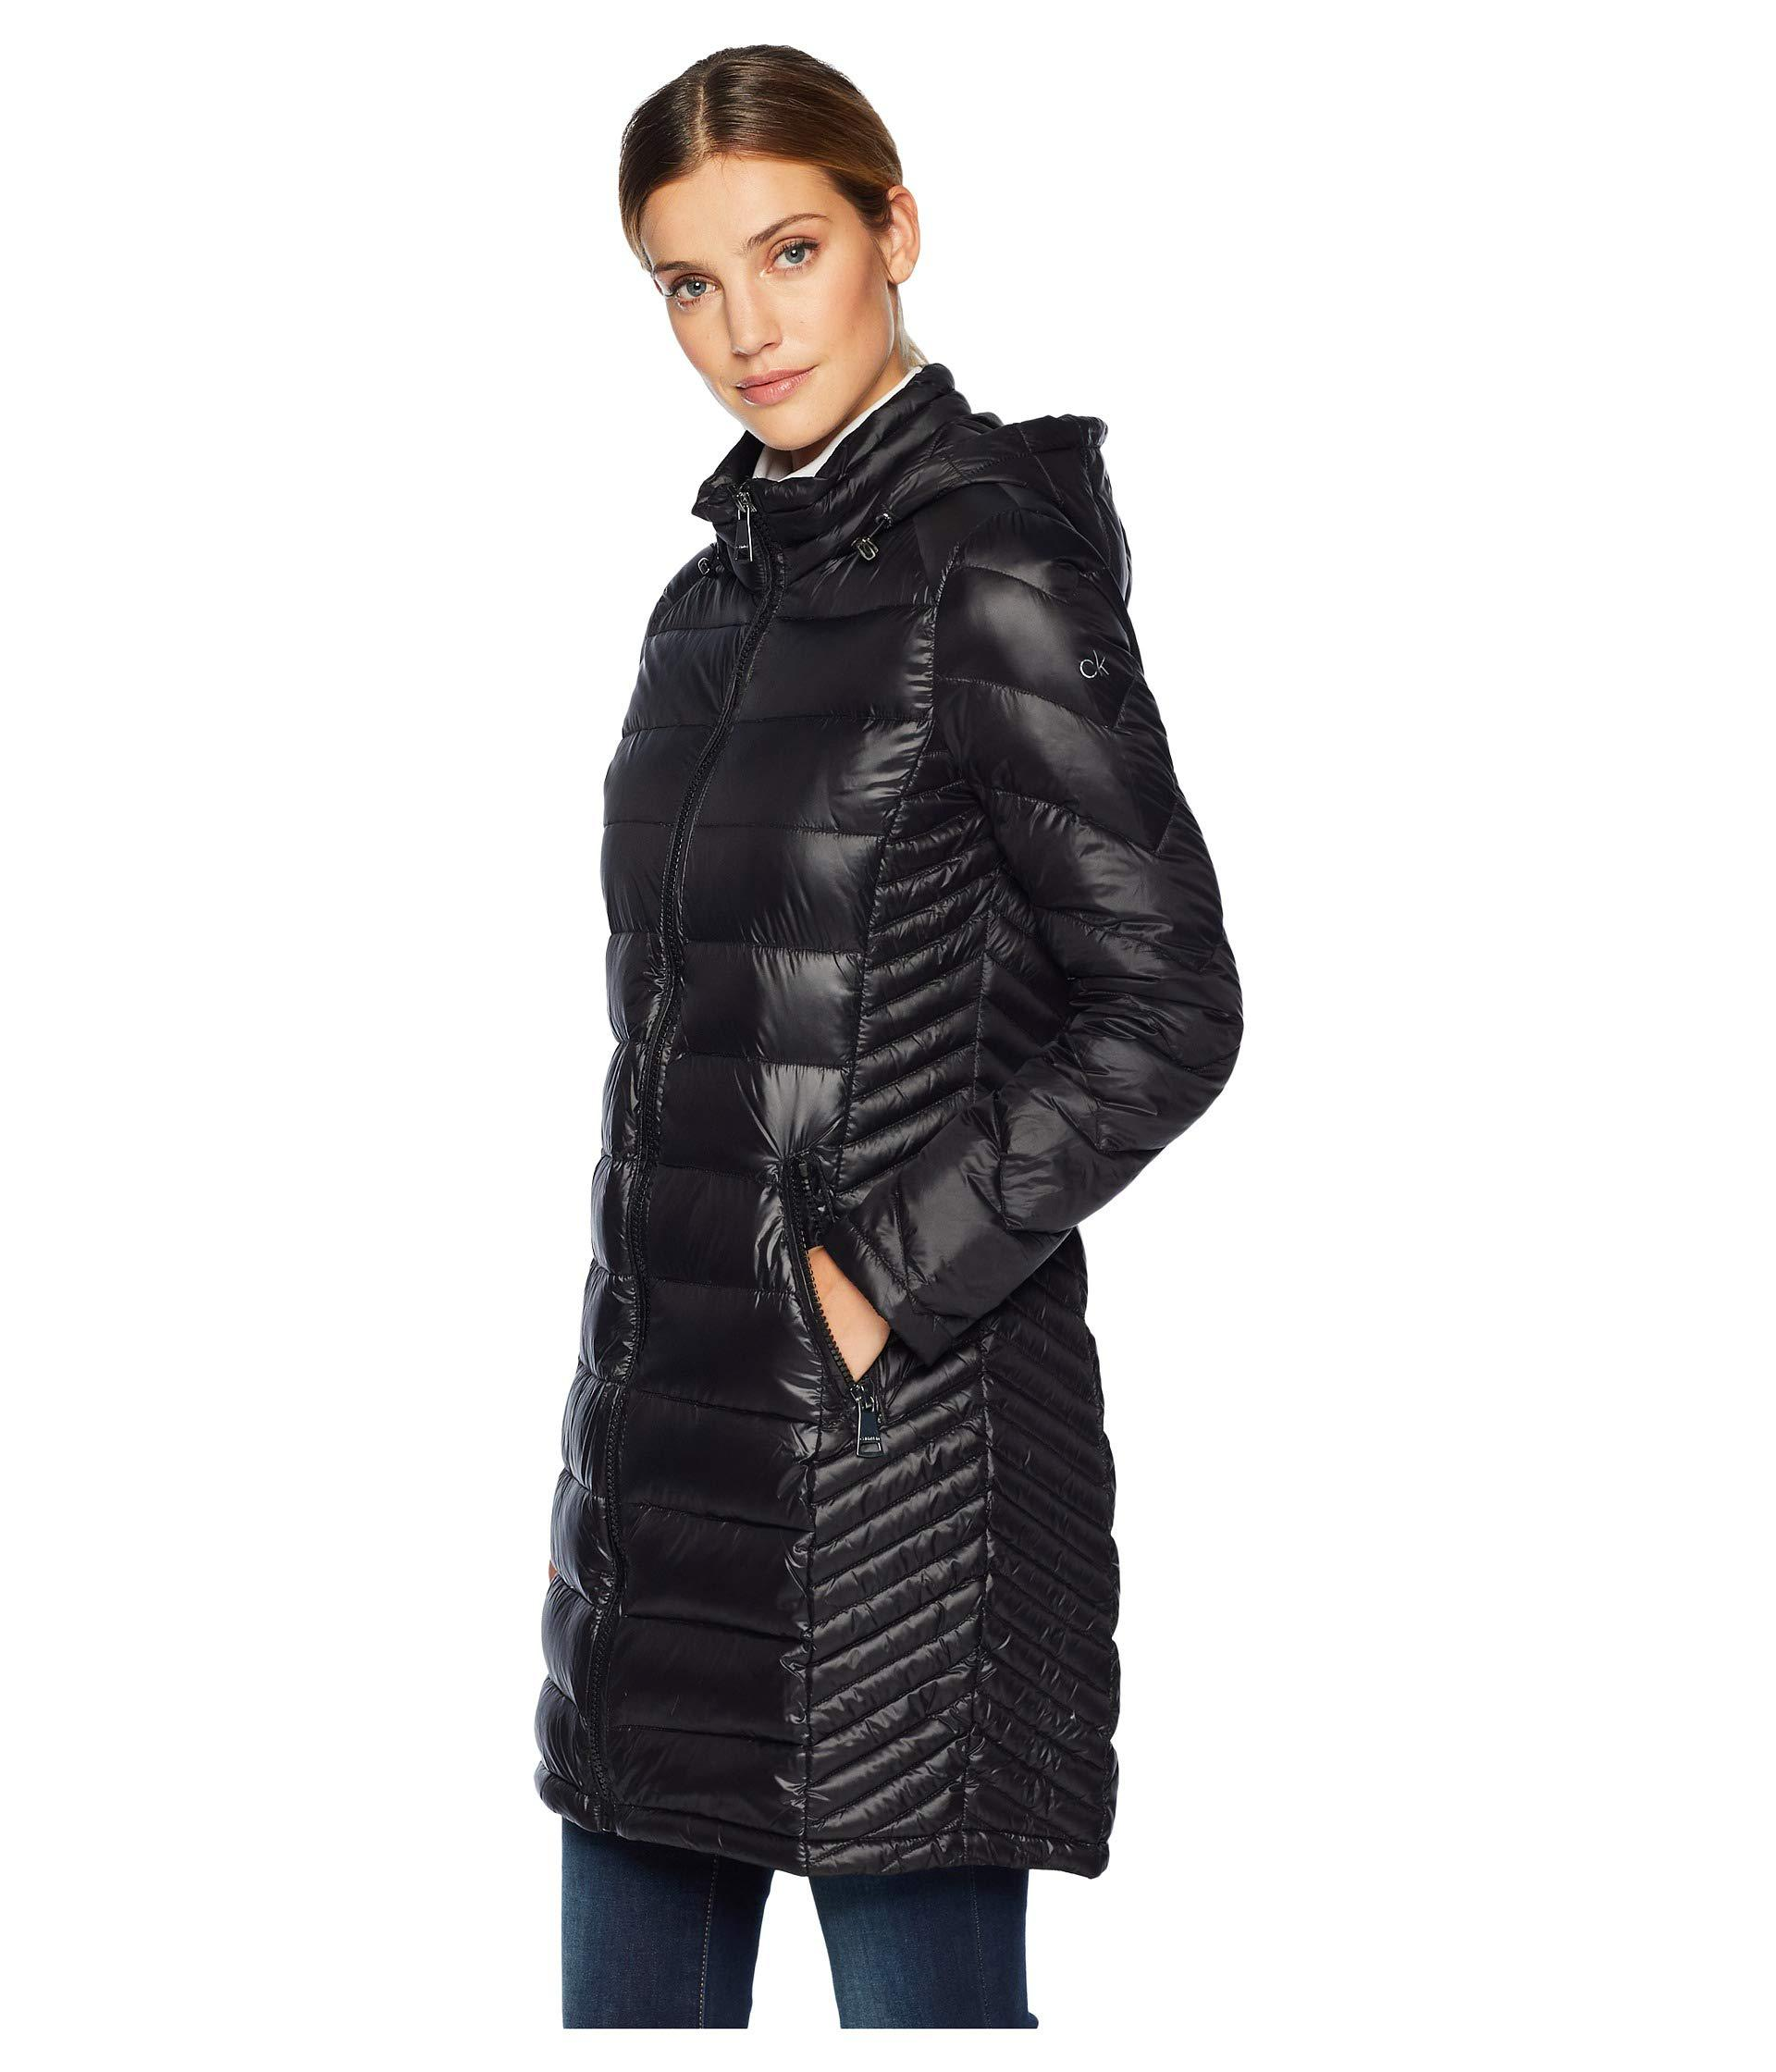 c8928ed9b8a Lyst - Calvin Klein Walker Length Packable With Chunky Zipper Hardware  (shine Chianti) Women s Coat in Black